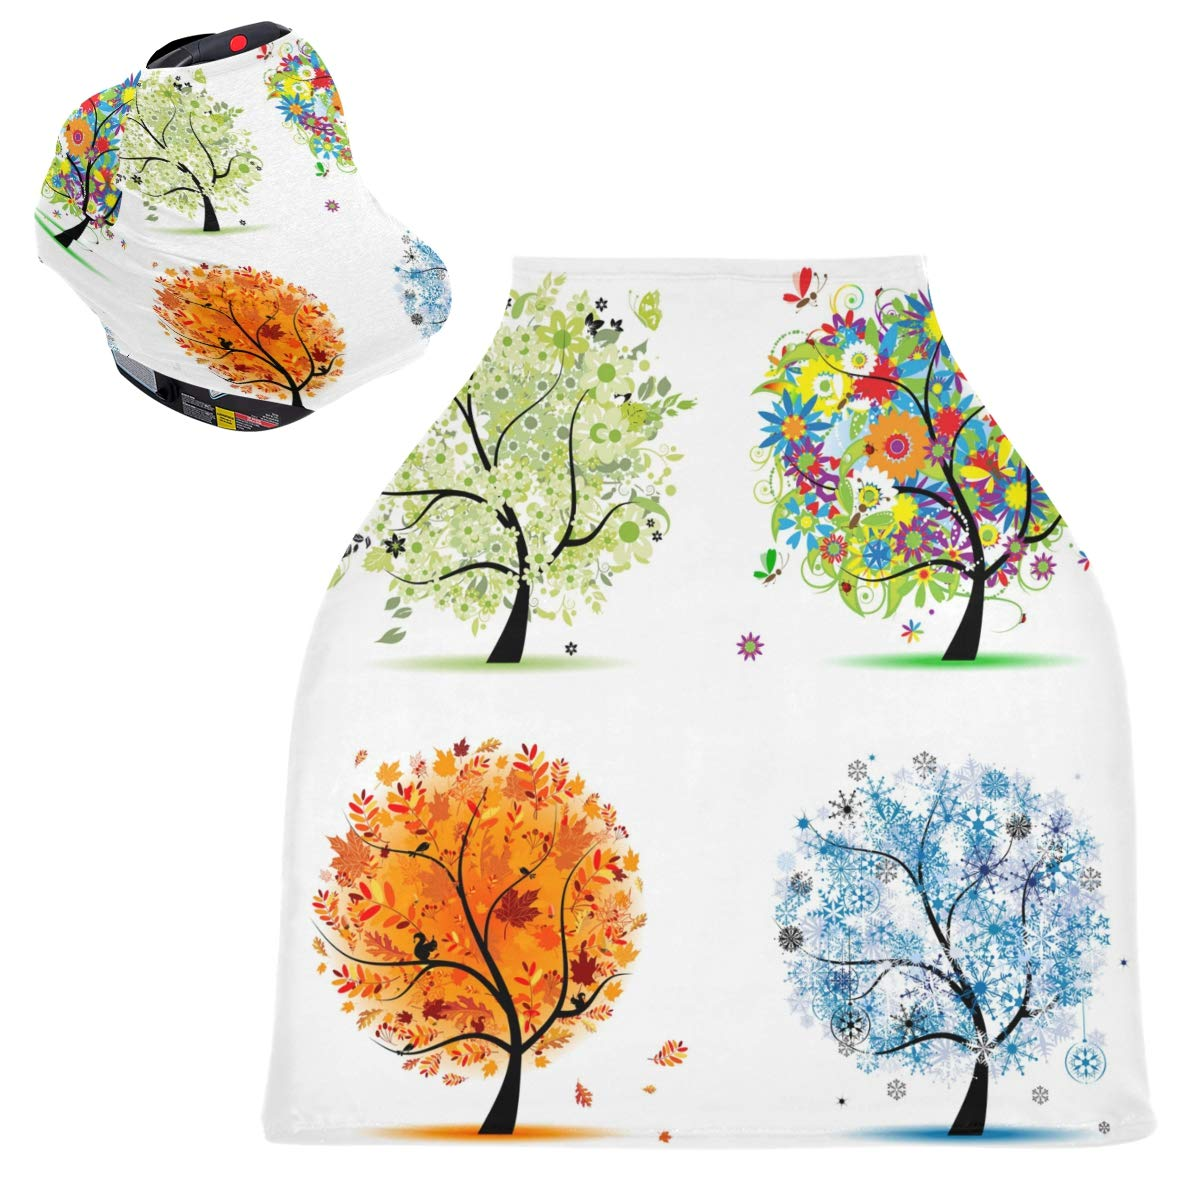 Stretchy Baby Car Seat Canopy - Four Seasons Art Tree Infant Stroller Cover Multi Use Carseat Scarf Nursing Cover for Boy